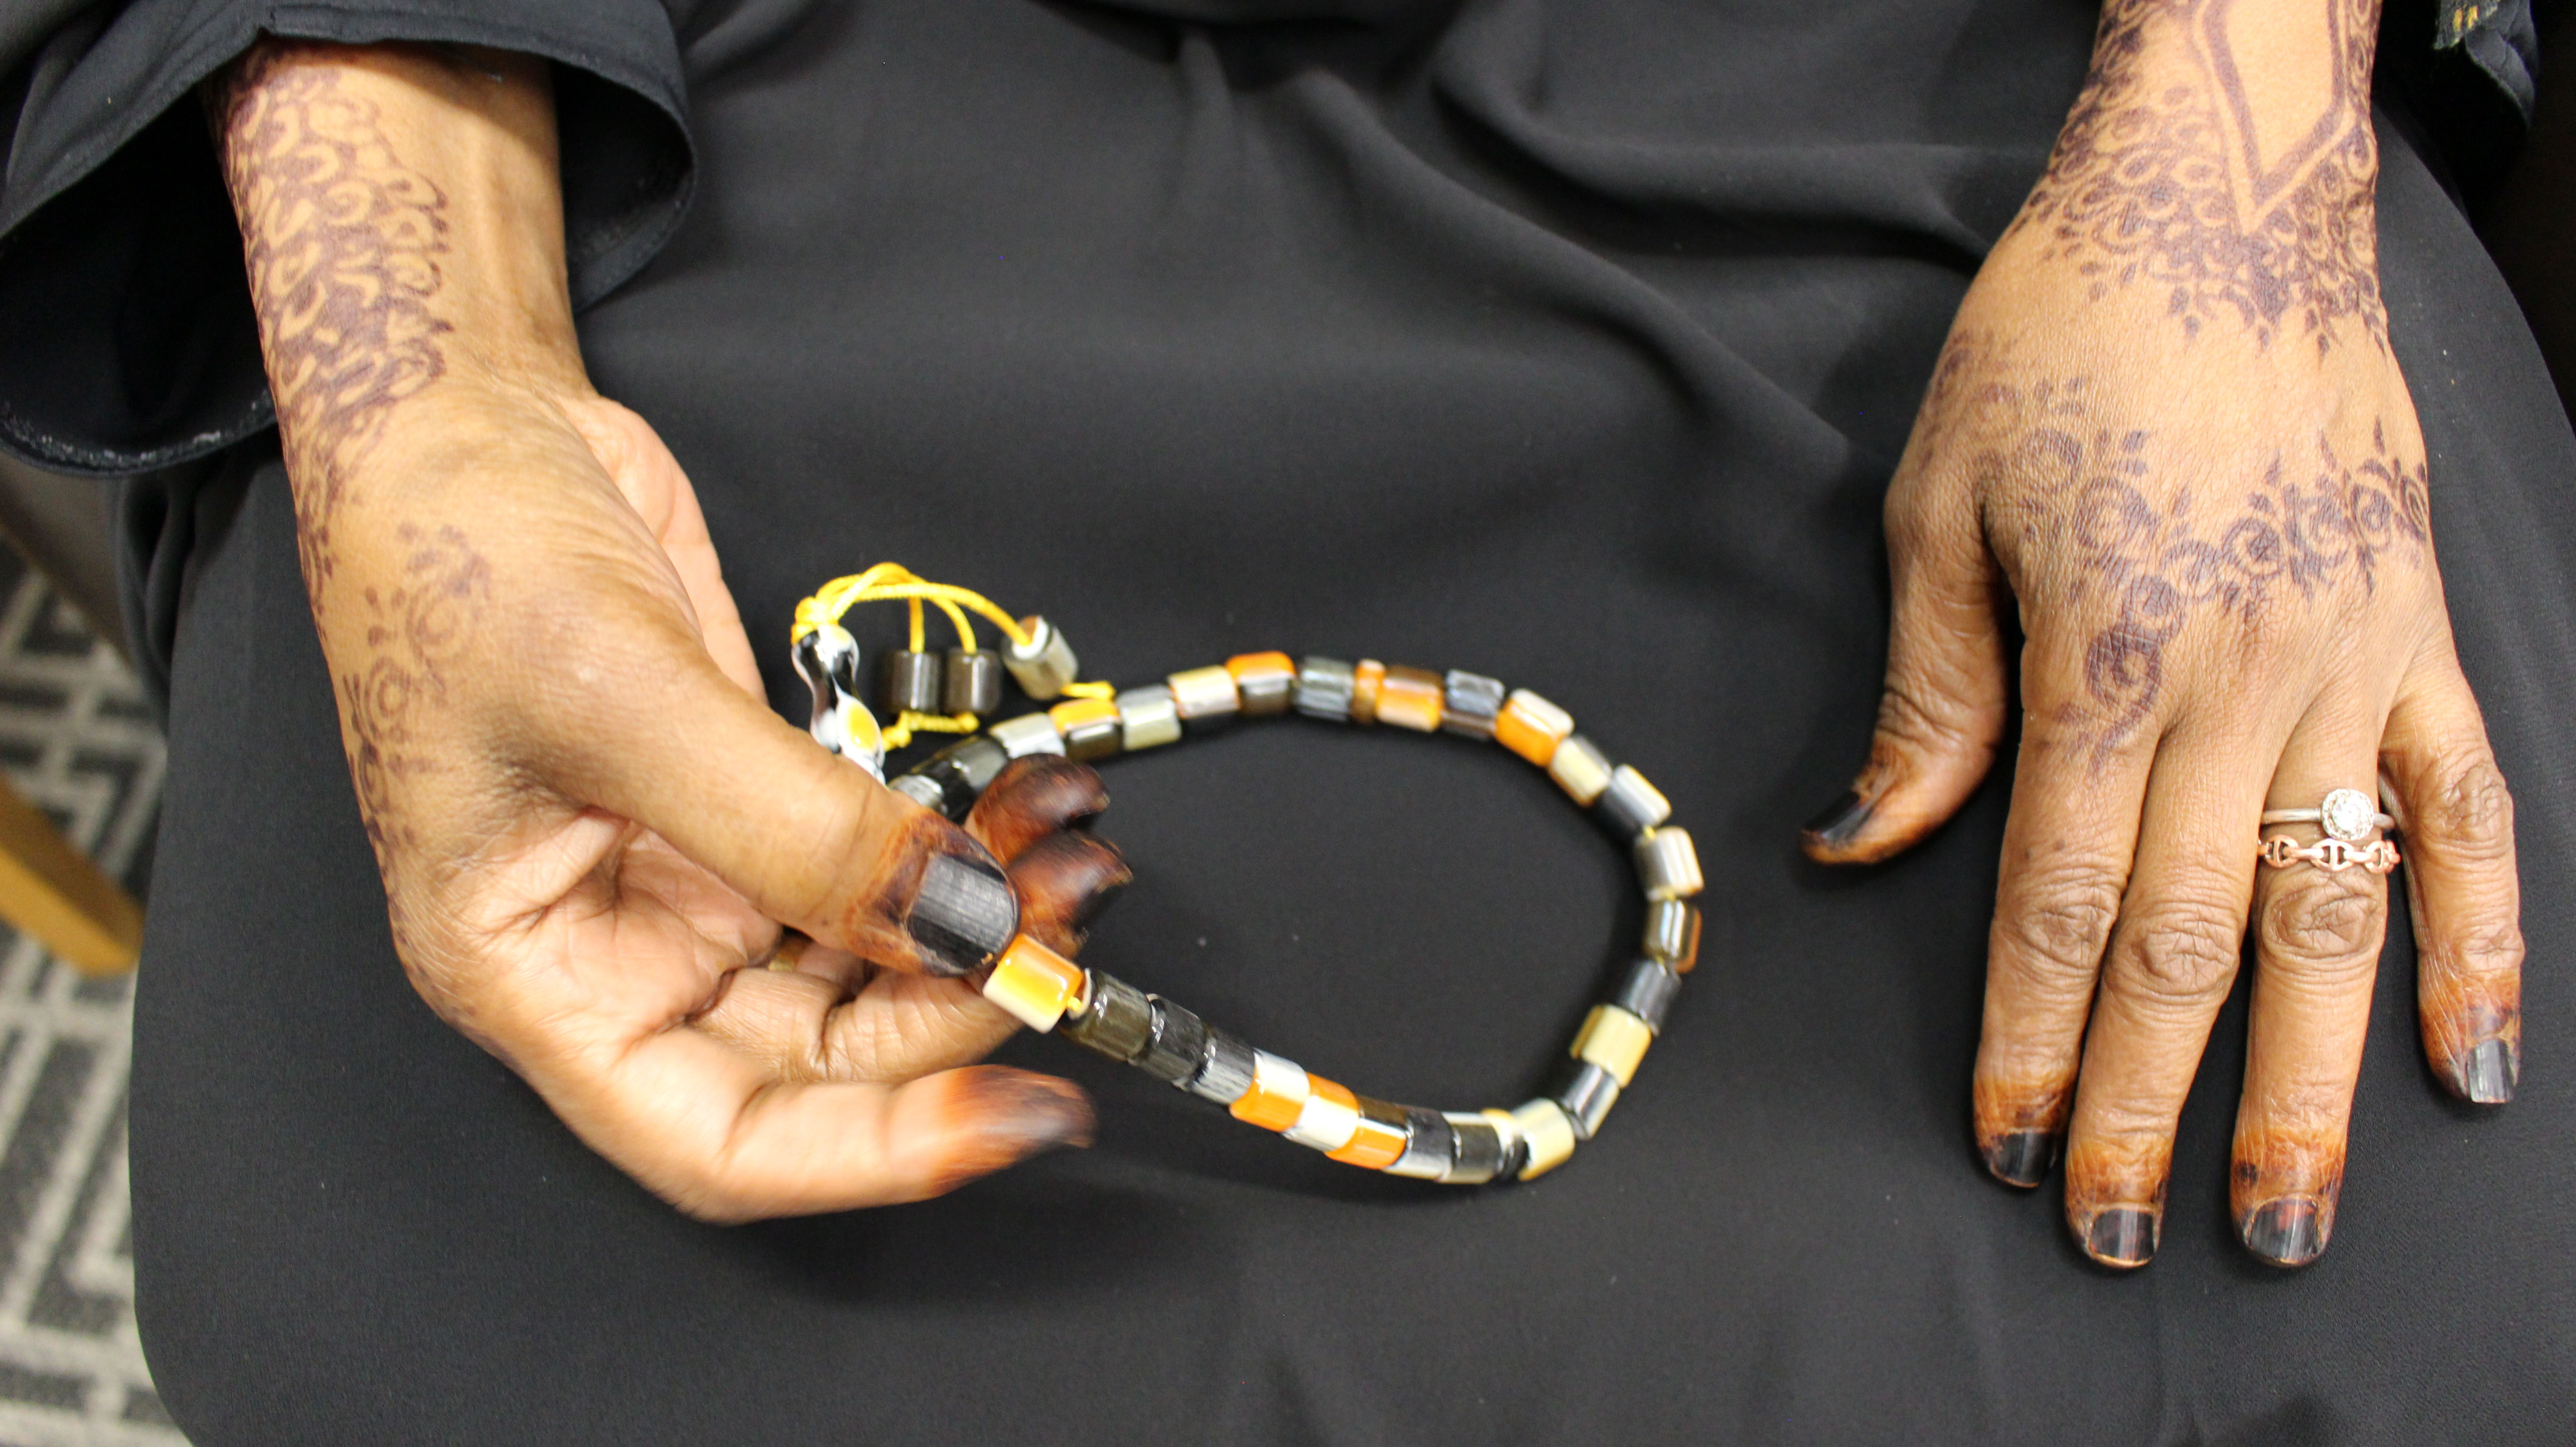 A pair of hands holds a black, orange and white beaded necklace